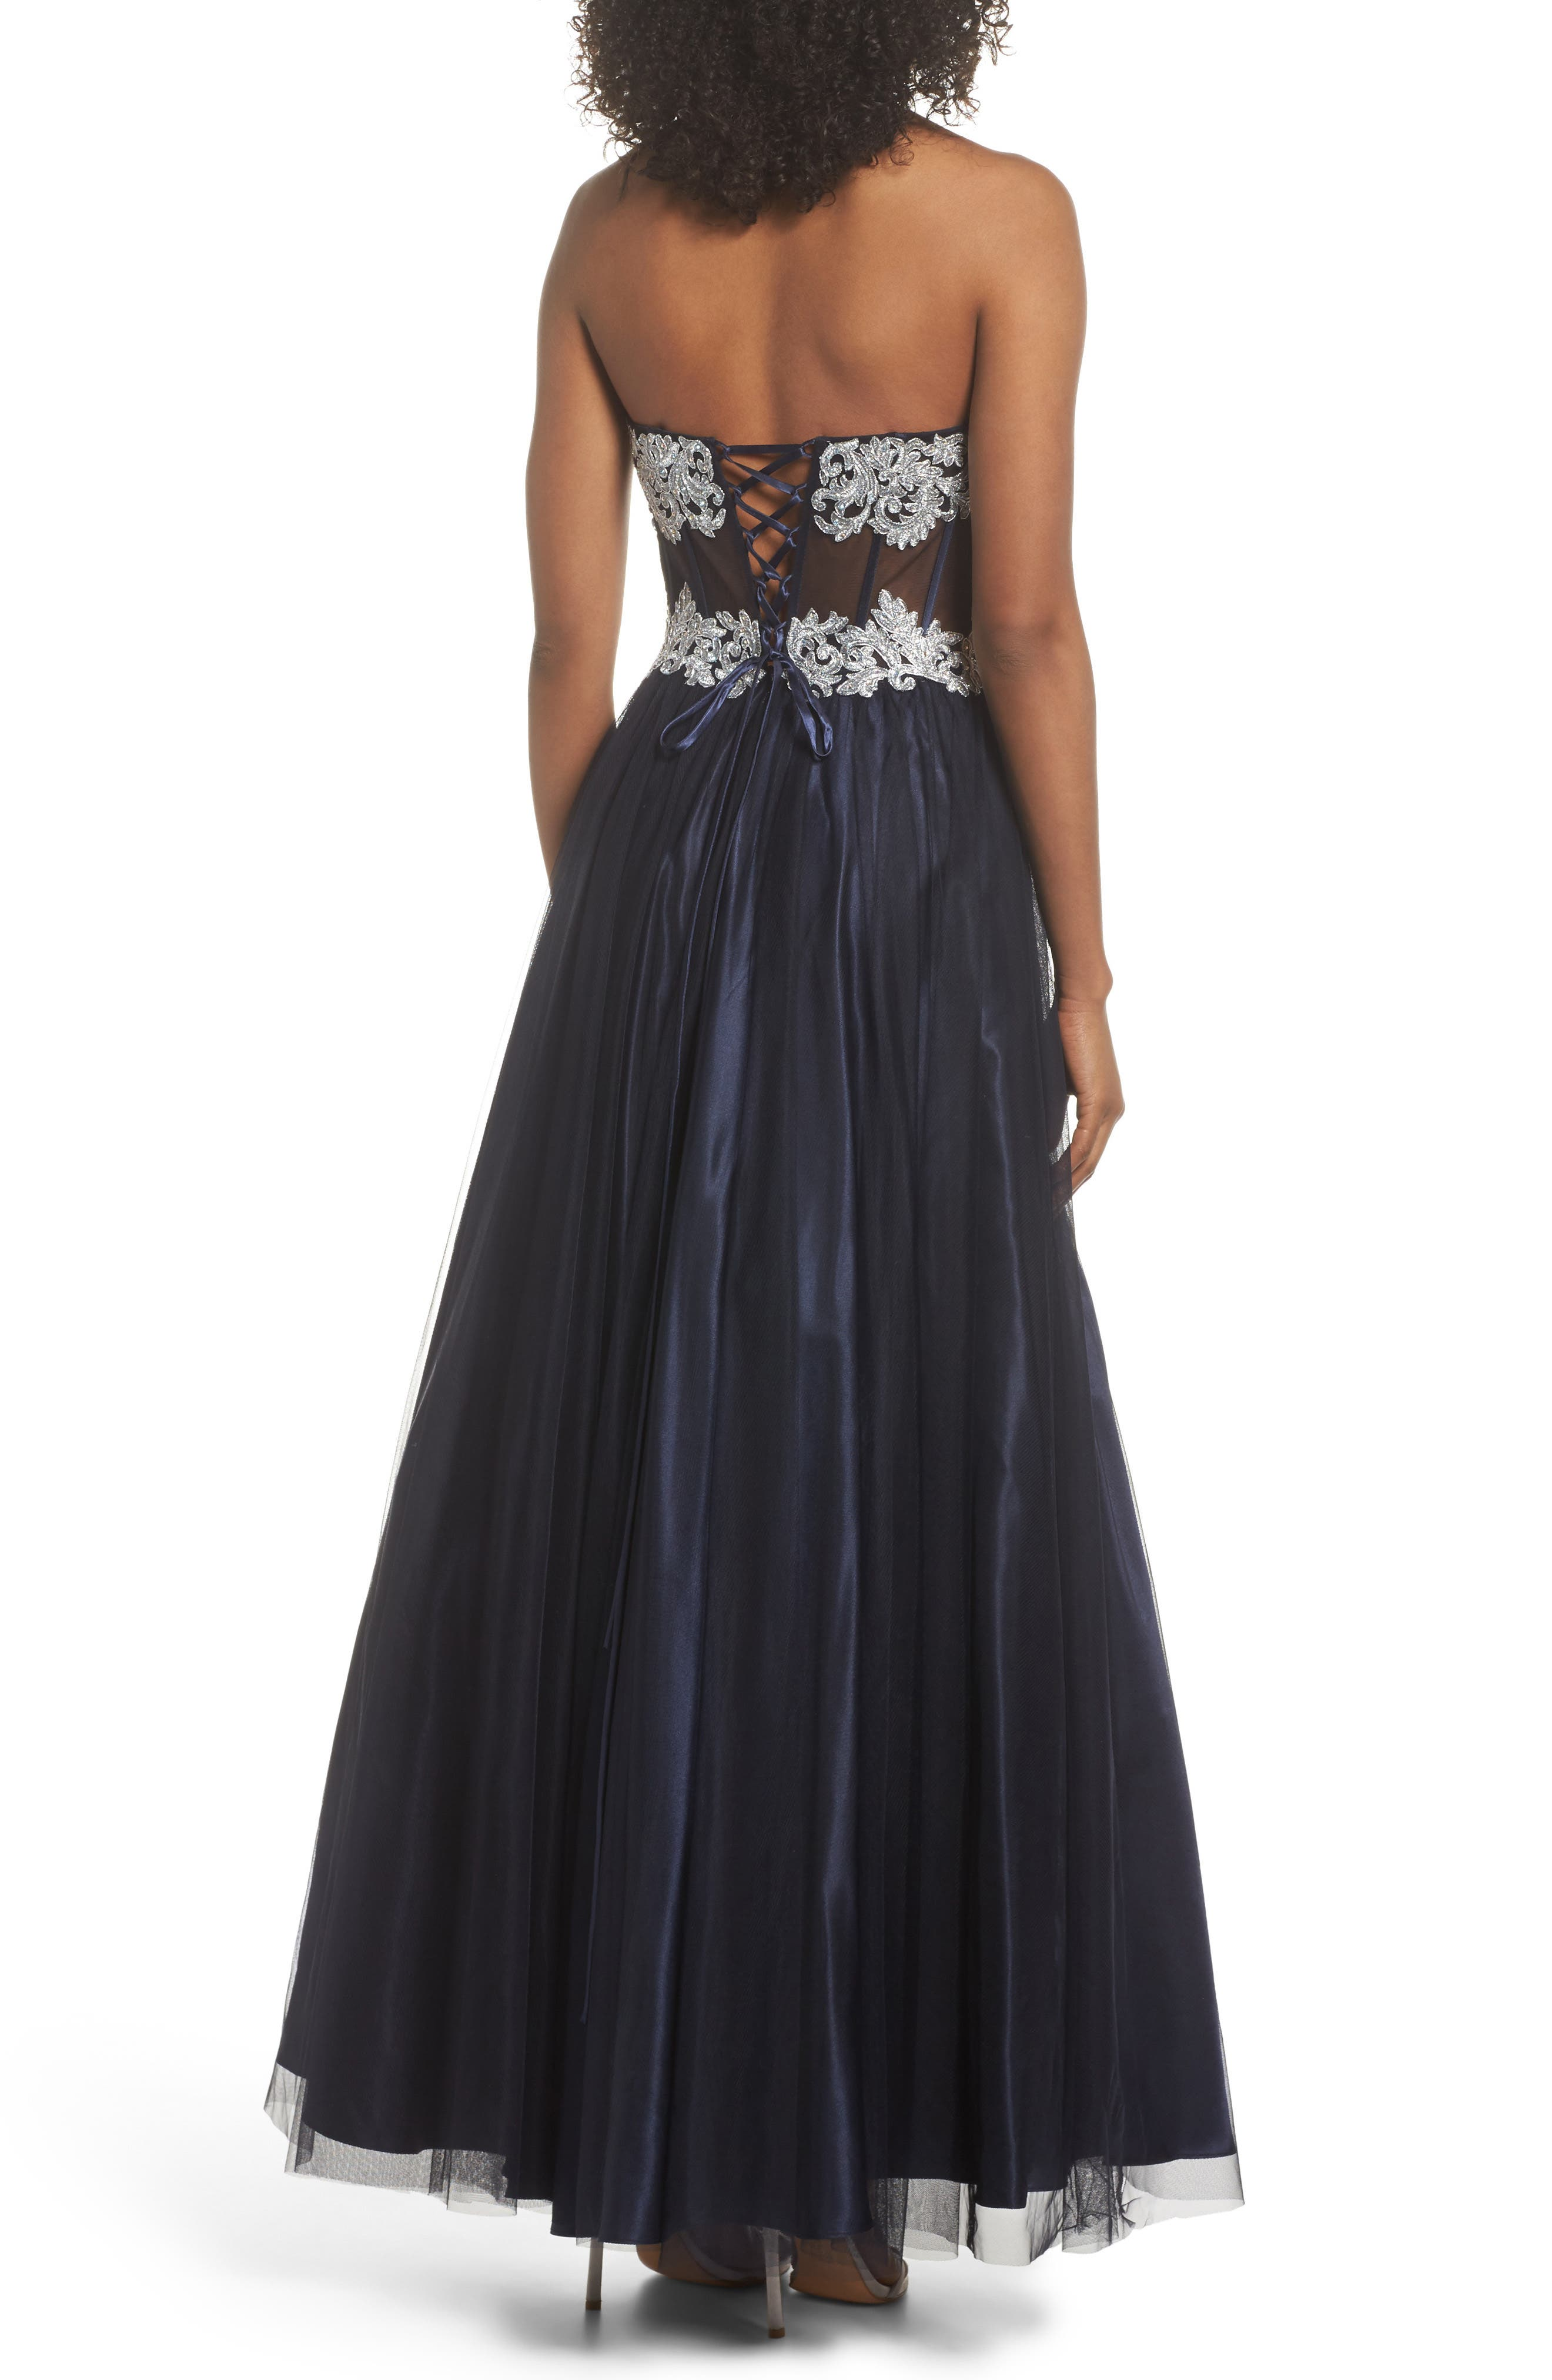 Embellished Corset Ballgown,                             Alternate thumbnail 2, color,                             Navy/ Silver